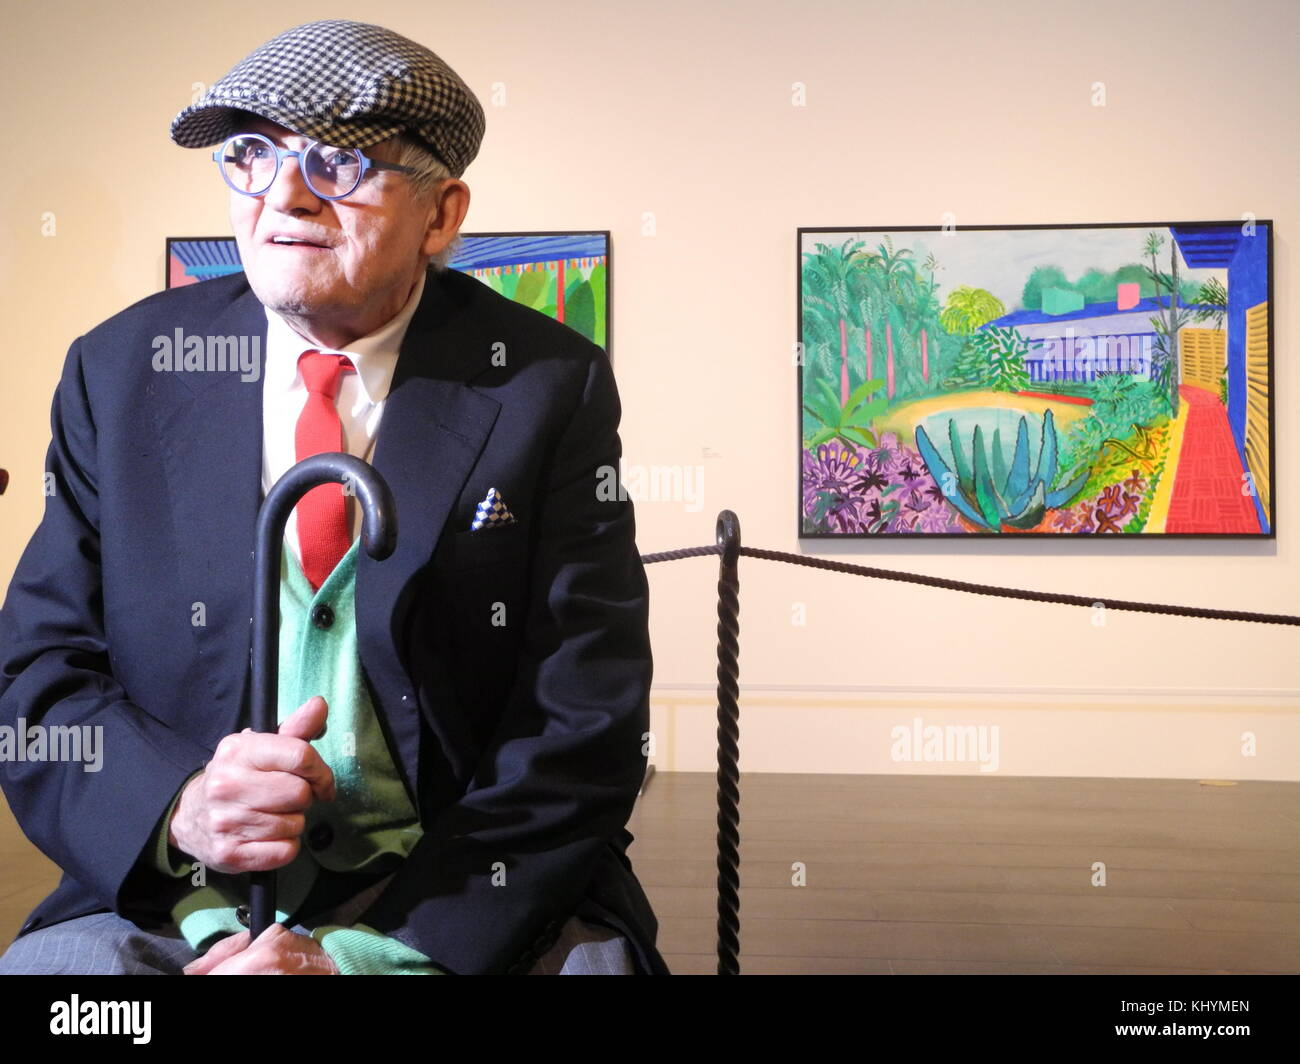 New York, USA. 20th Nov, 2017. David Hockney sitting in front of his 'Garden' painting at the Metropolitan - Stock Image